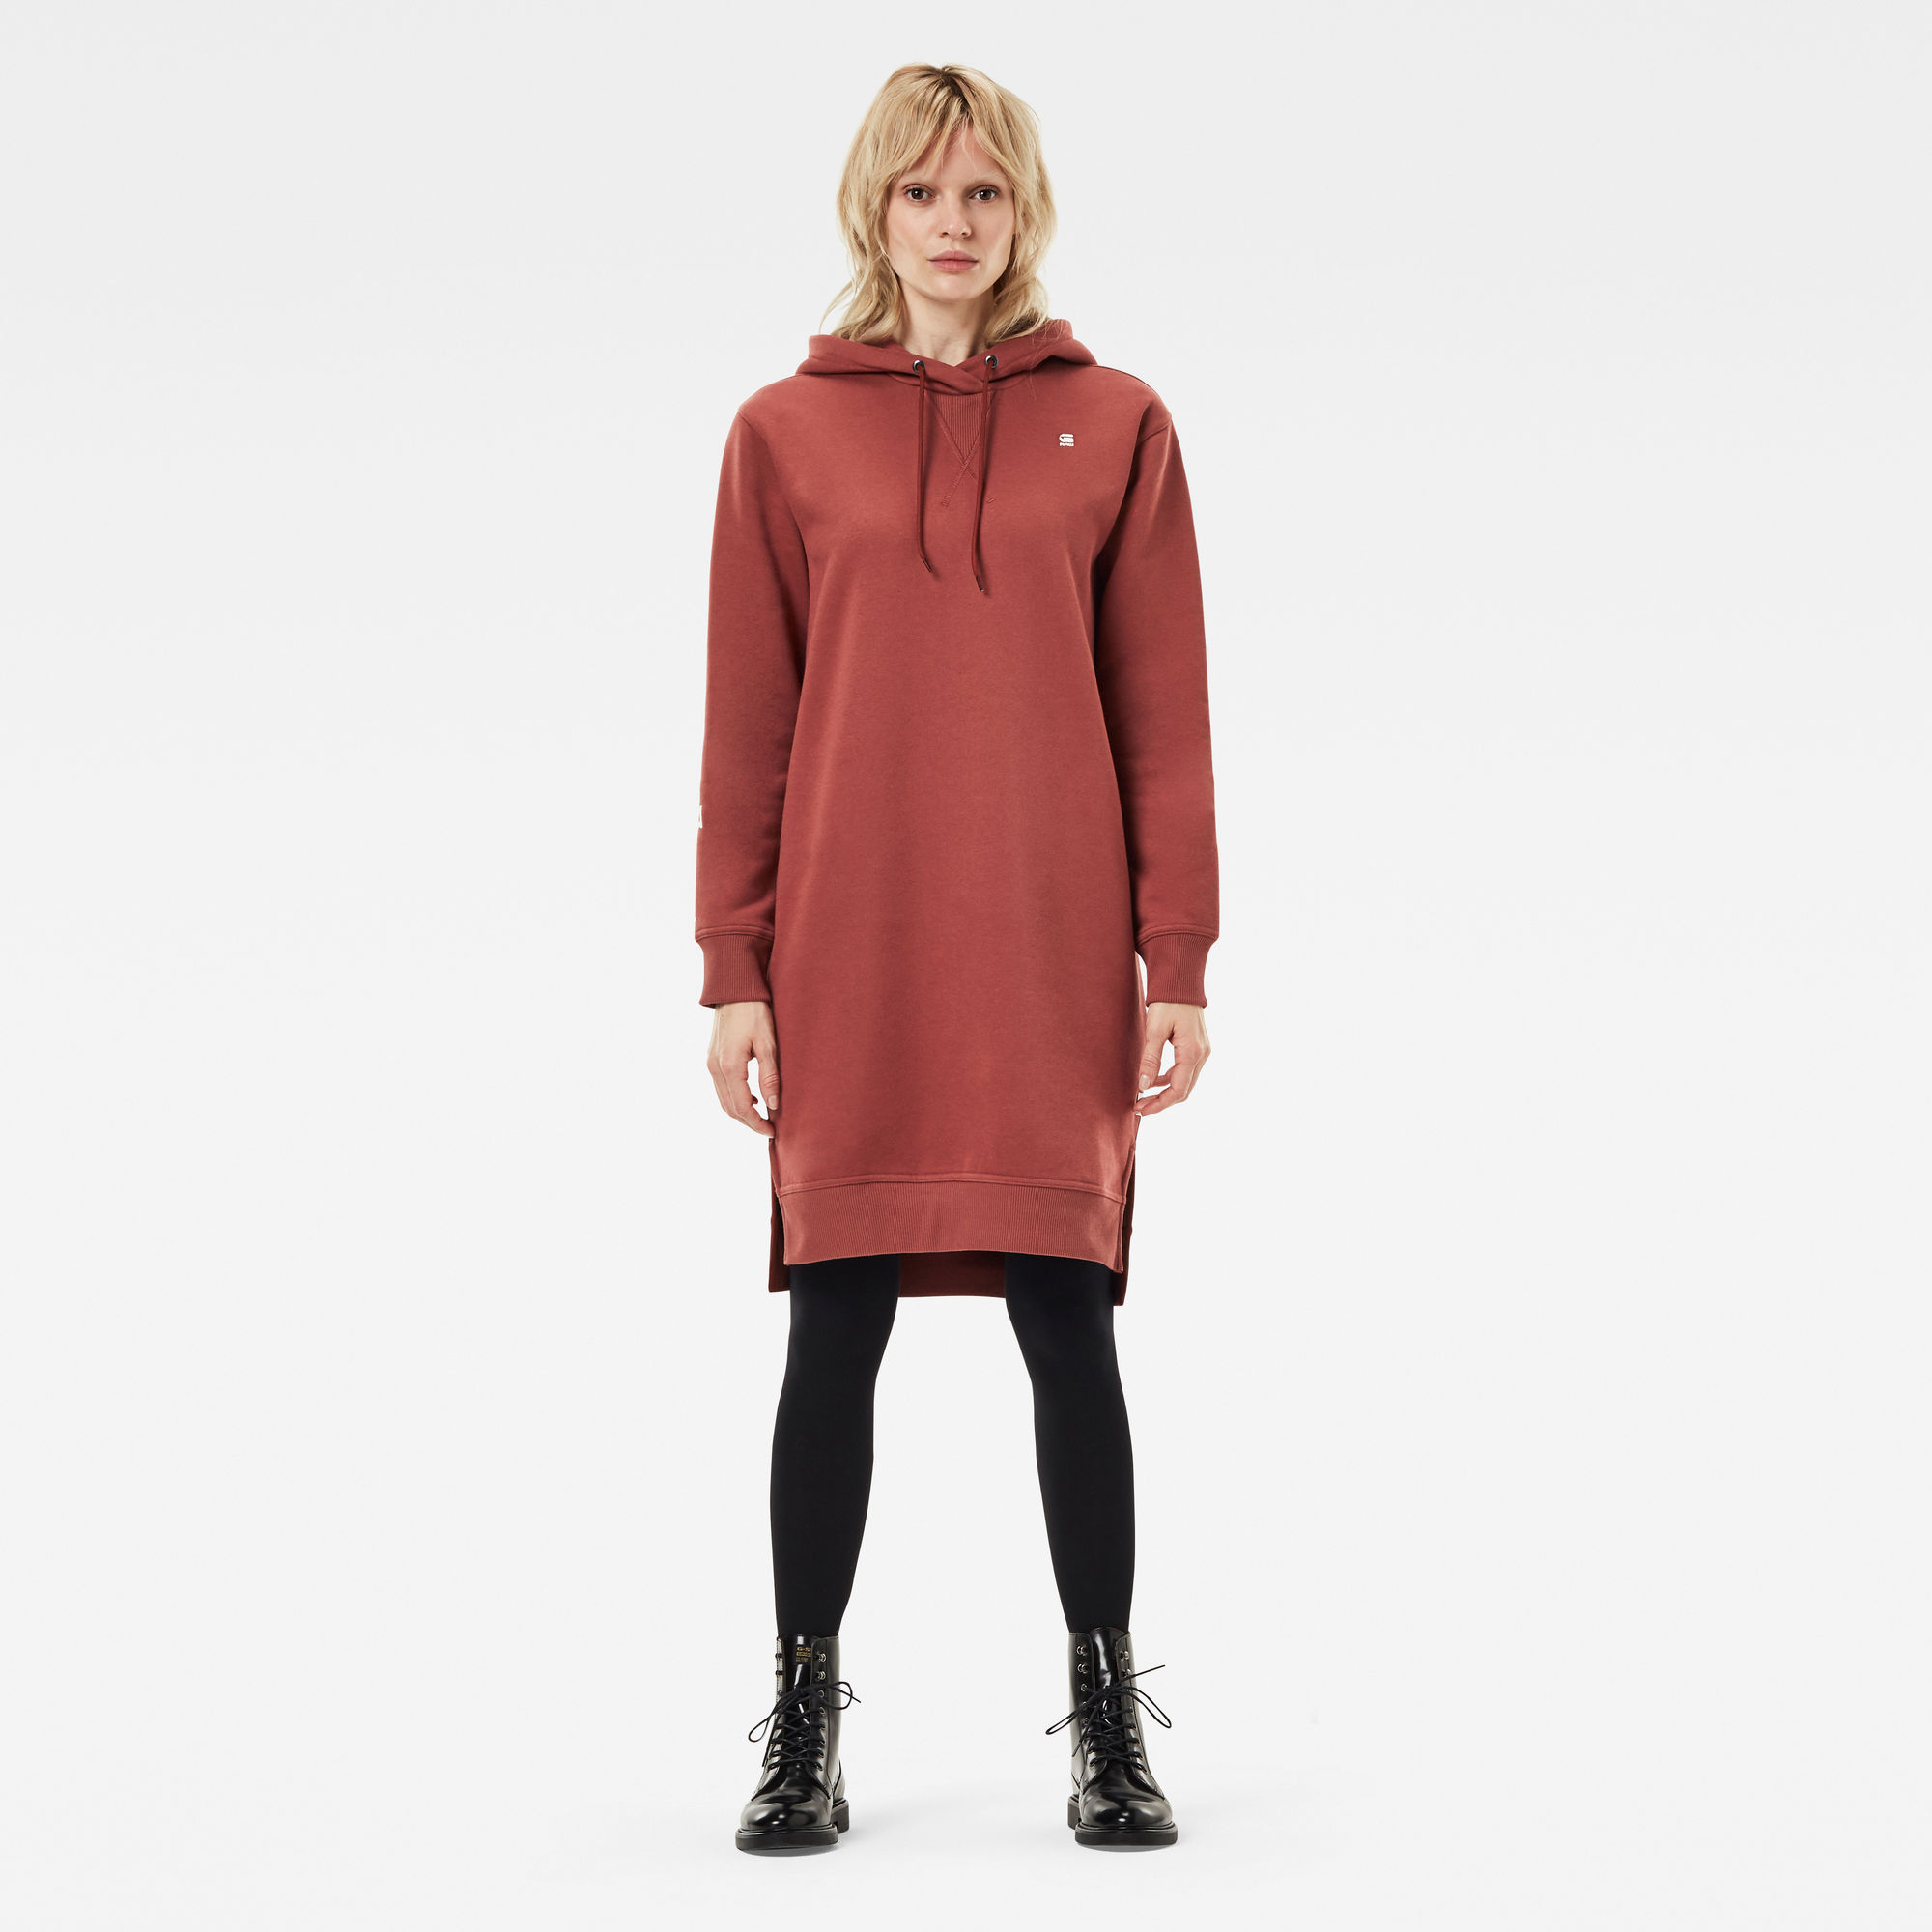 G-Star RAW Dames The Graphic Text Boyfriend Hooded Sweater Rood